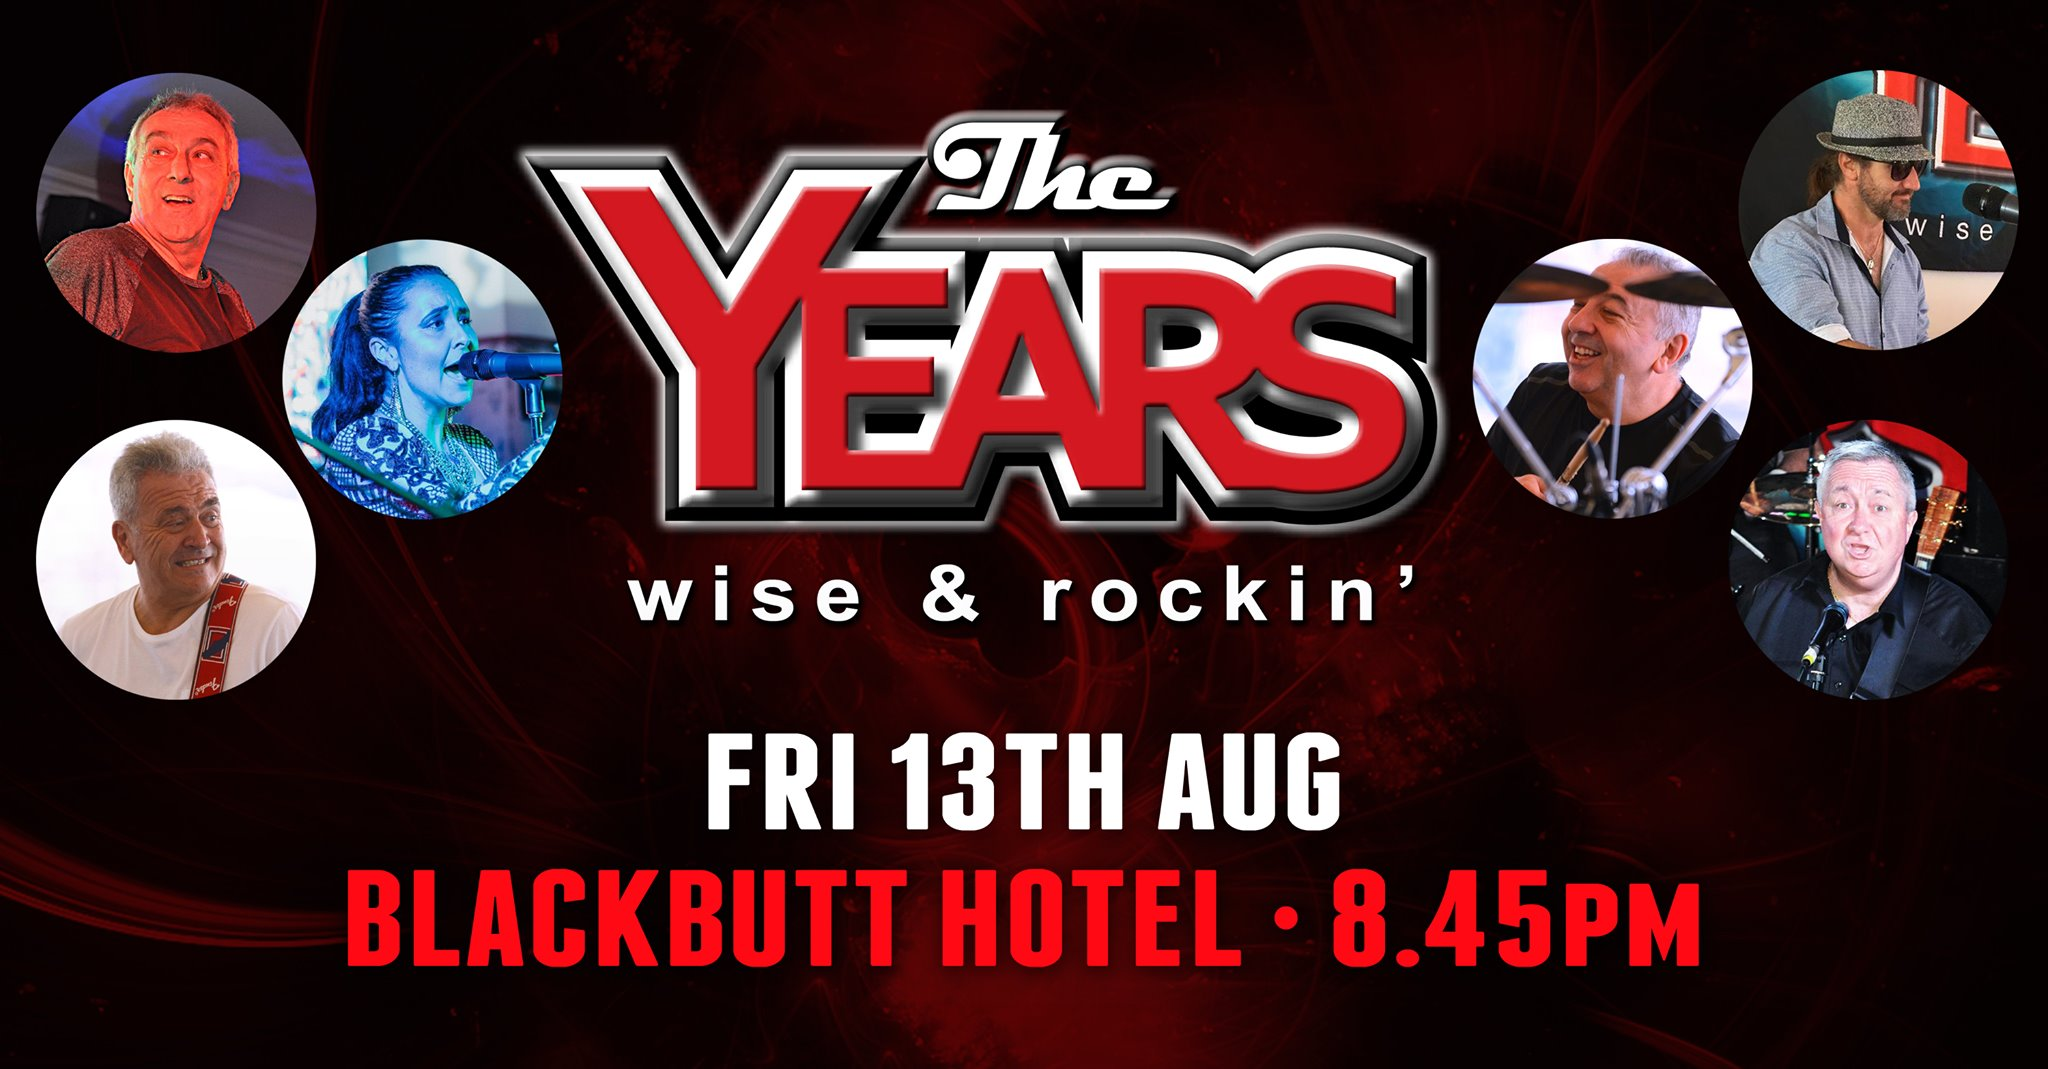 The Years at Blackbutt Hotel